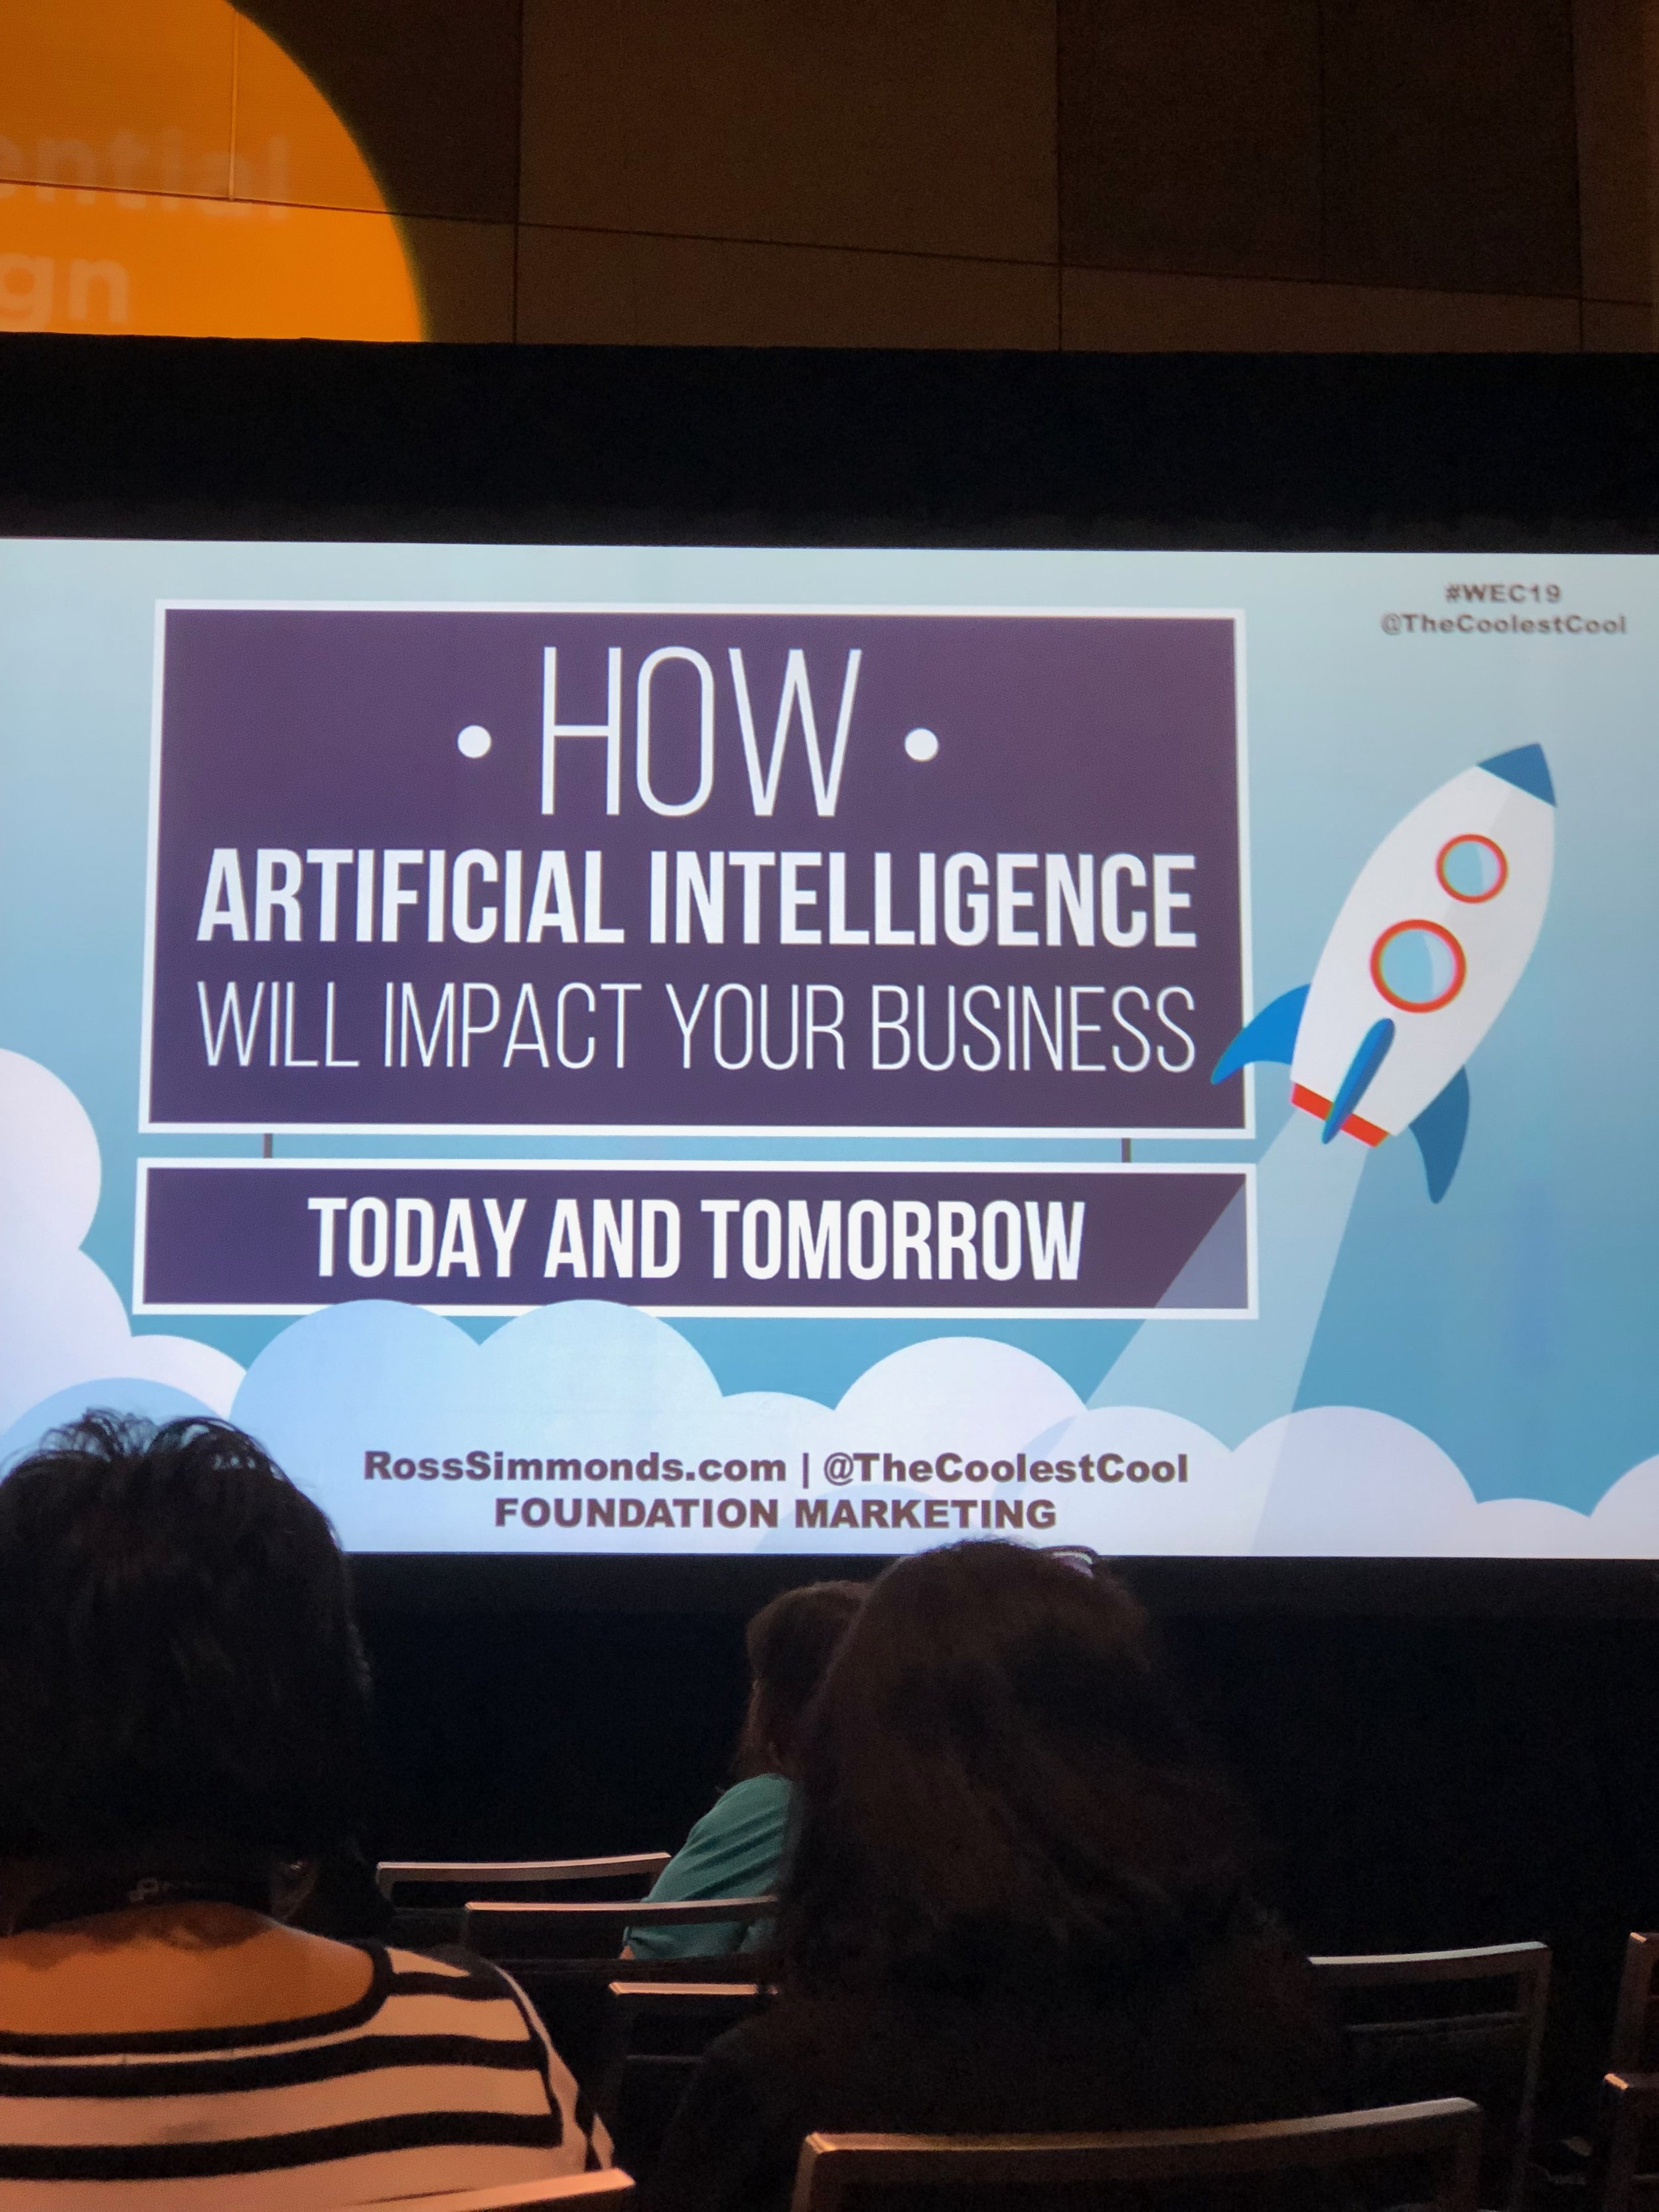 How AI will impact your business today and tomorrow